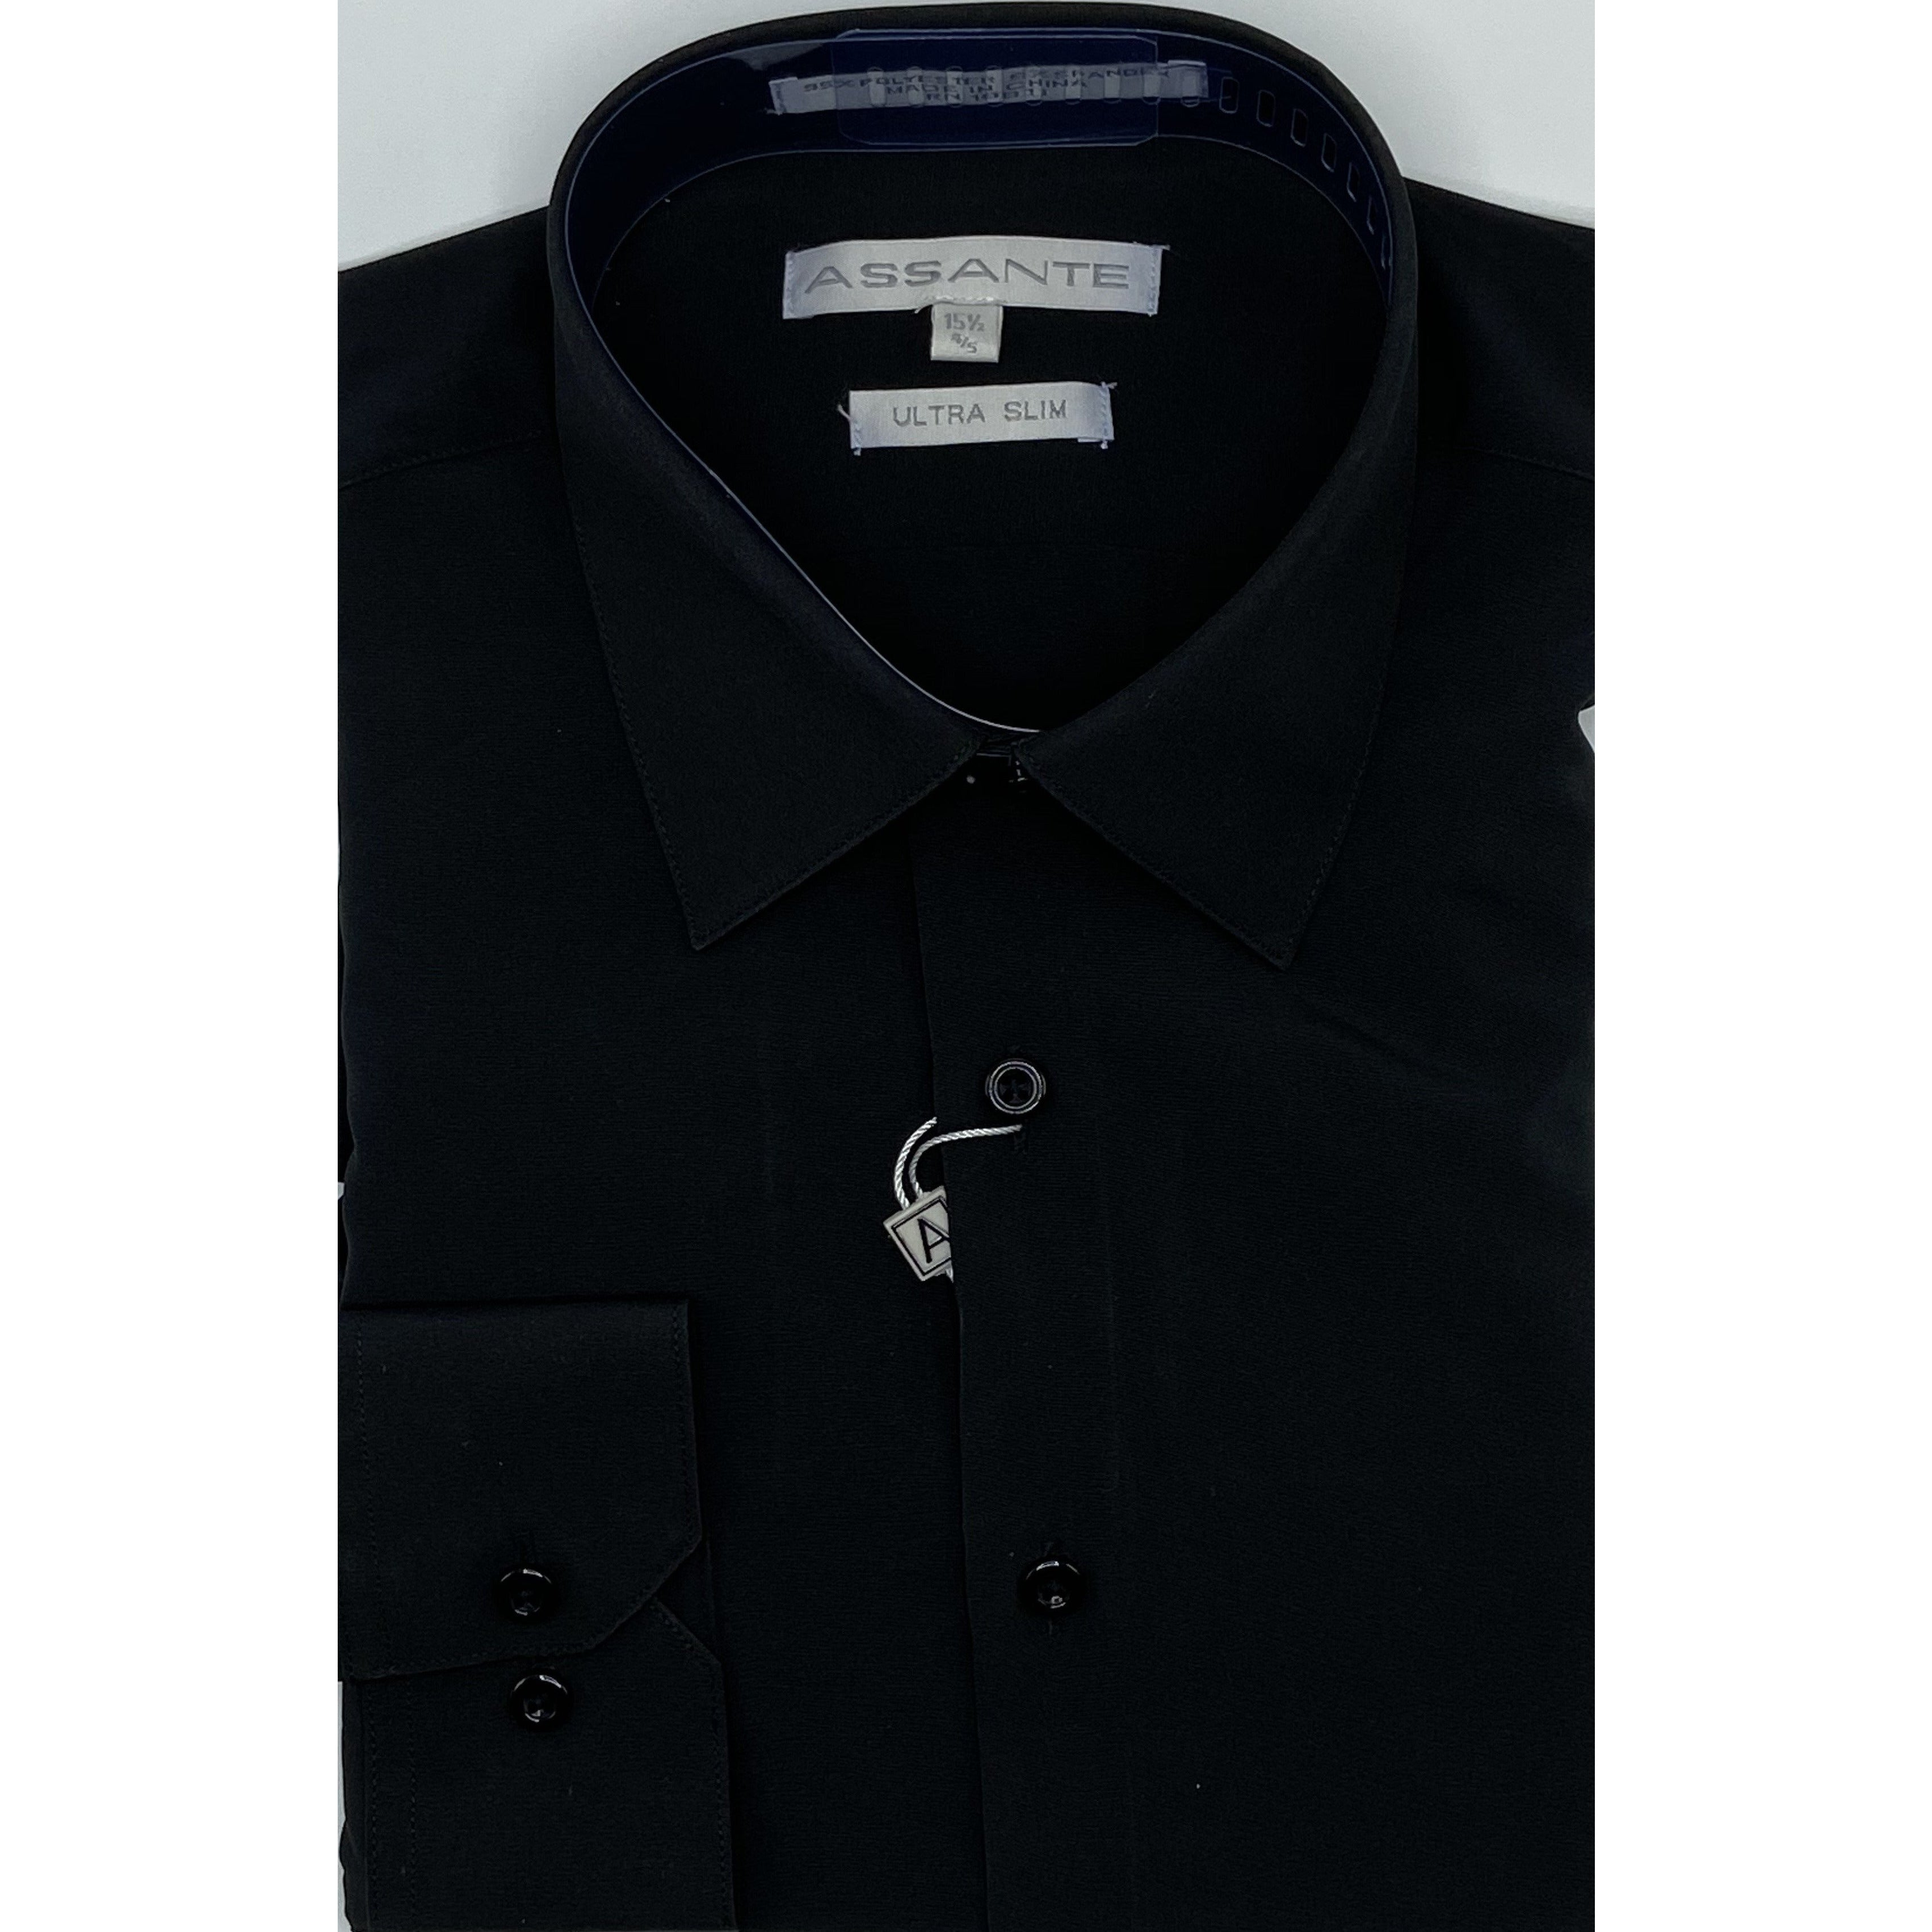 ASSANTE ULTRA SLIM DRESS SHIRT BLACK